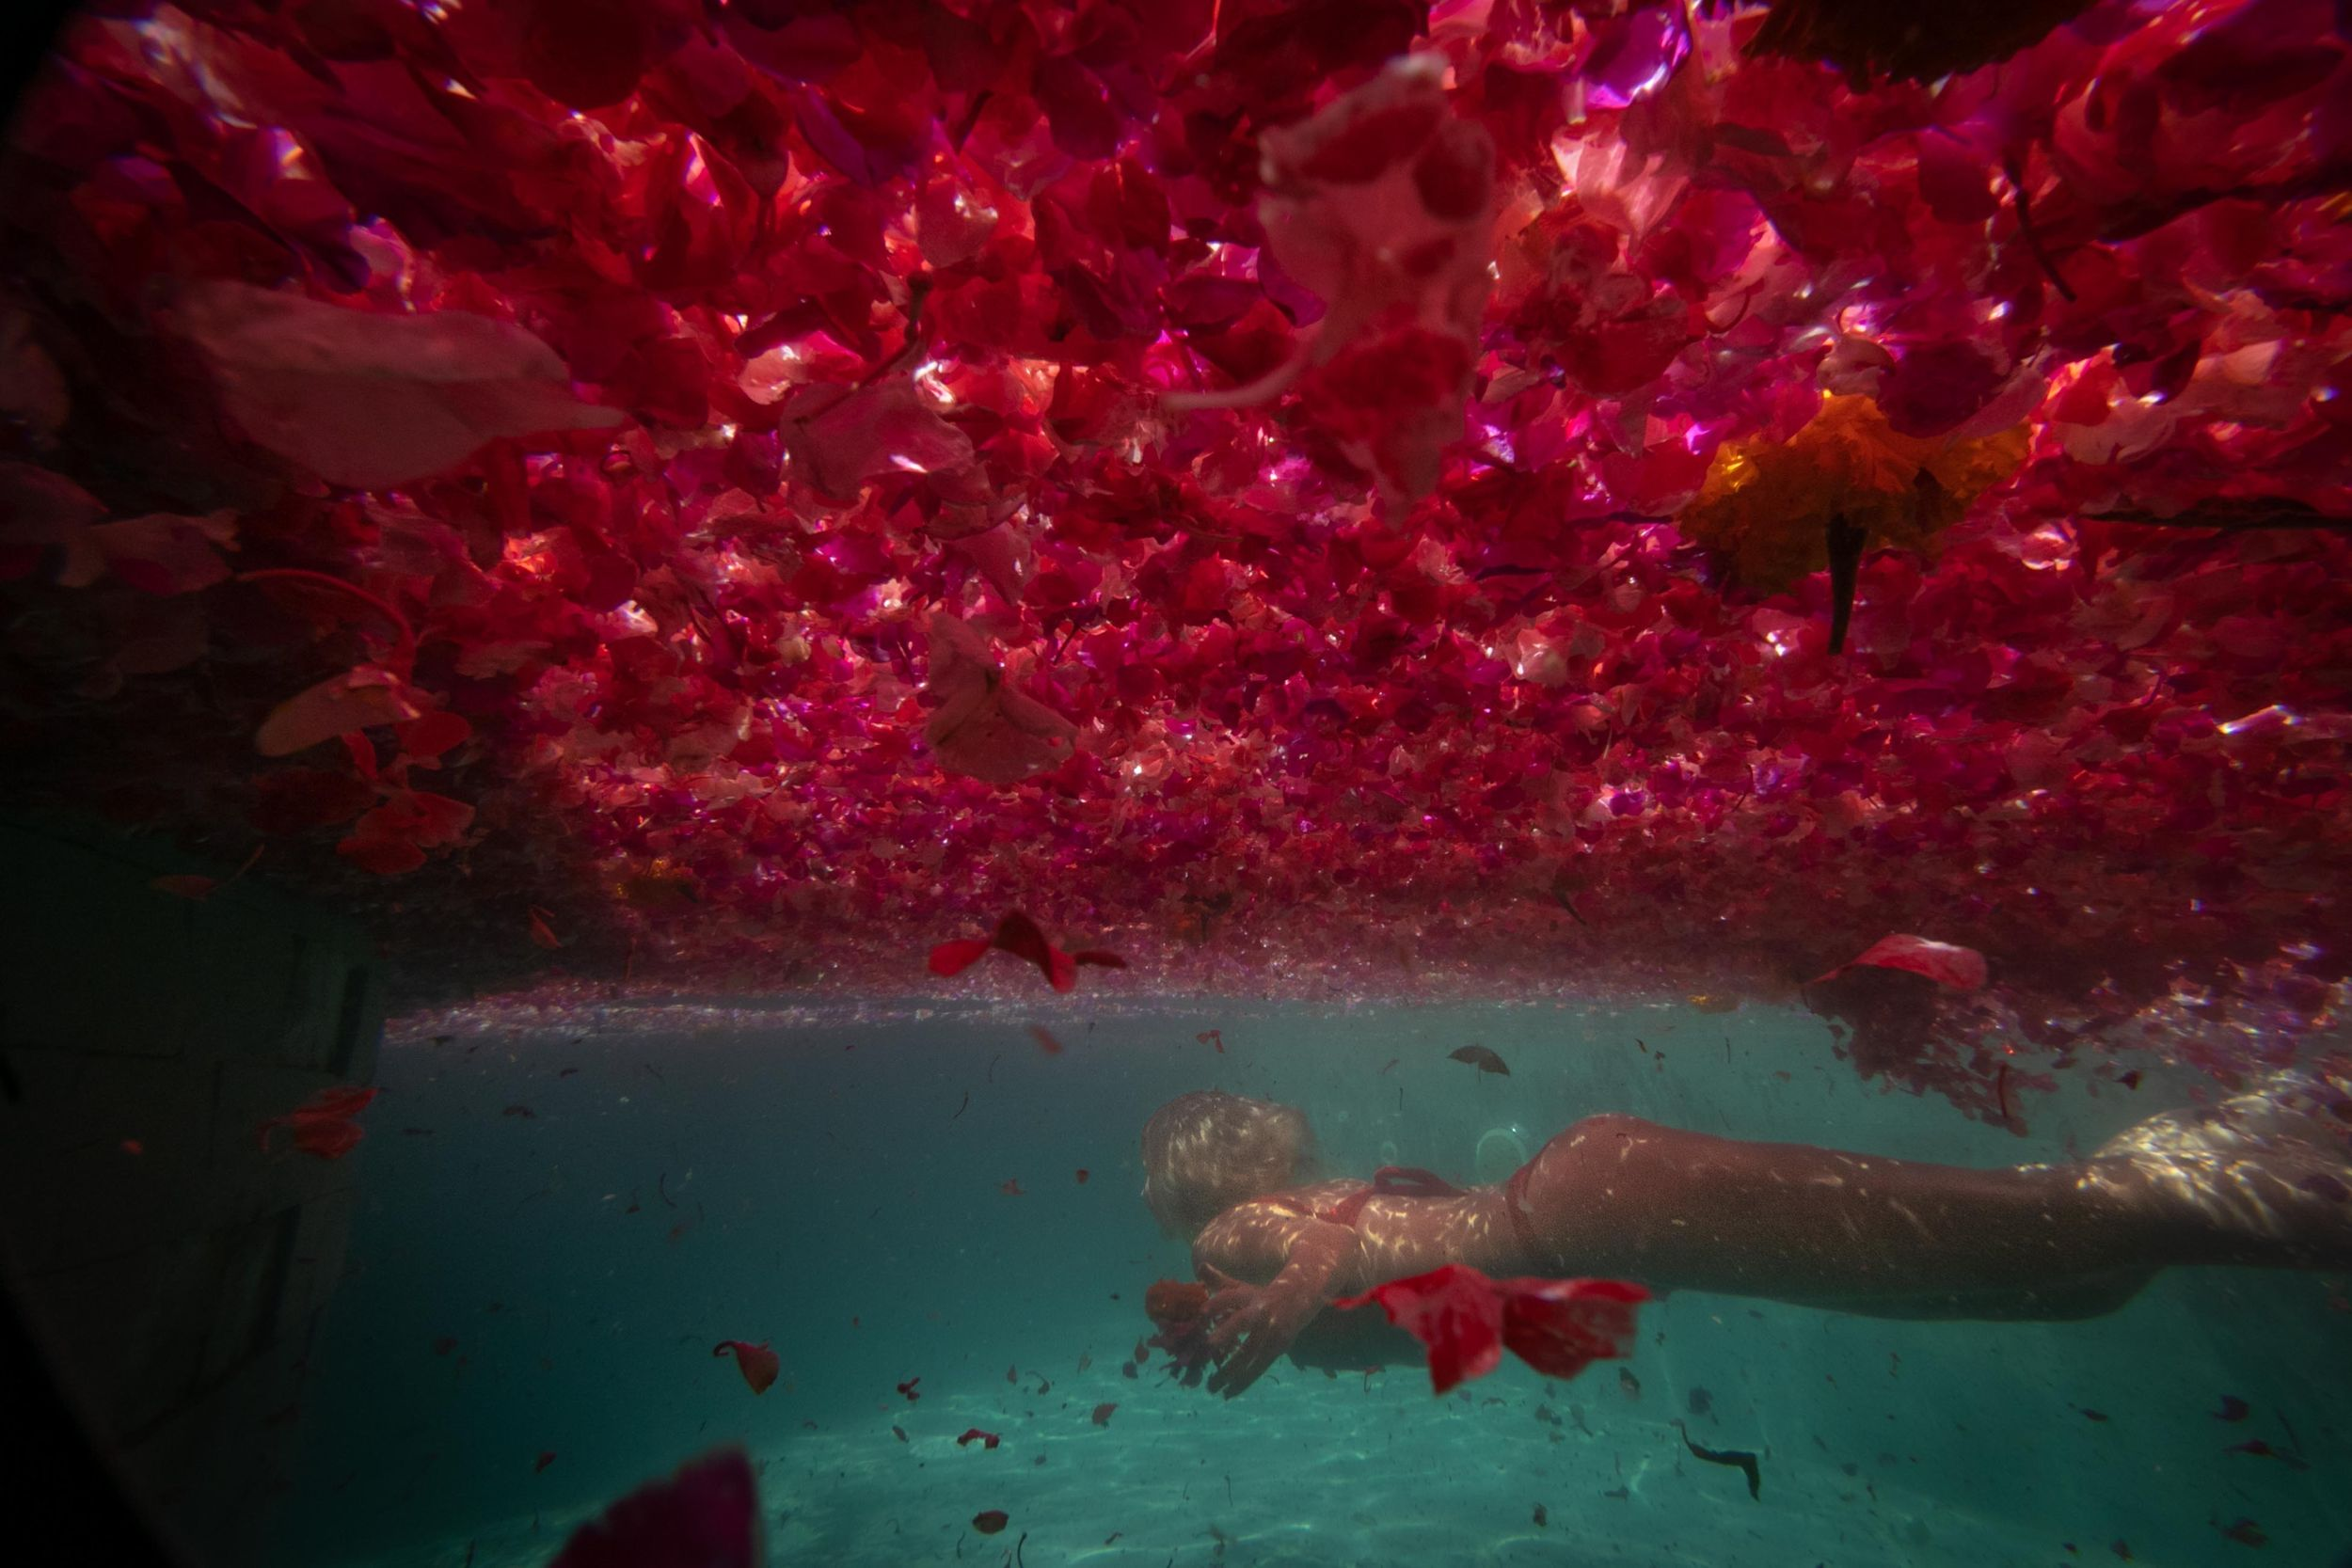 A girl swimming beneath a sea of red flowers